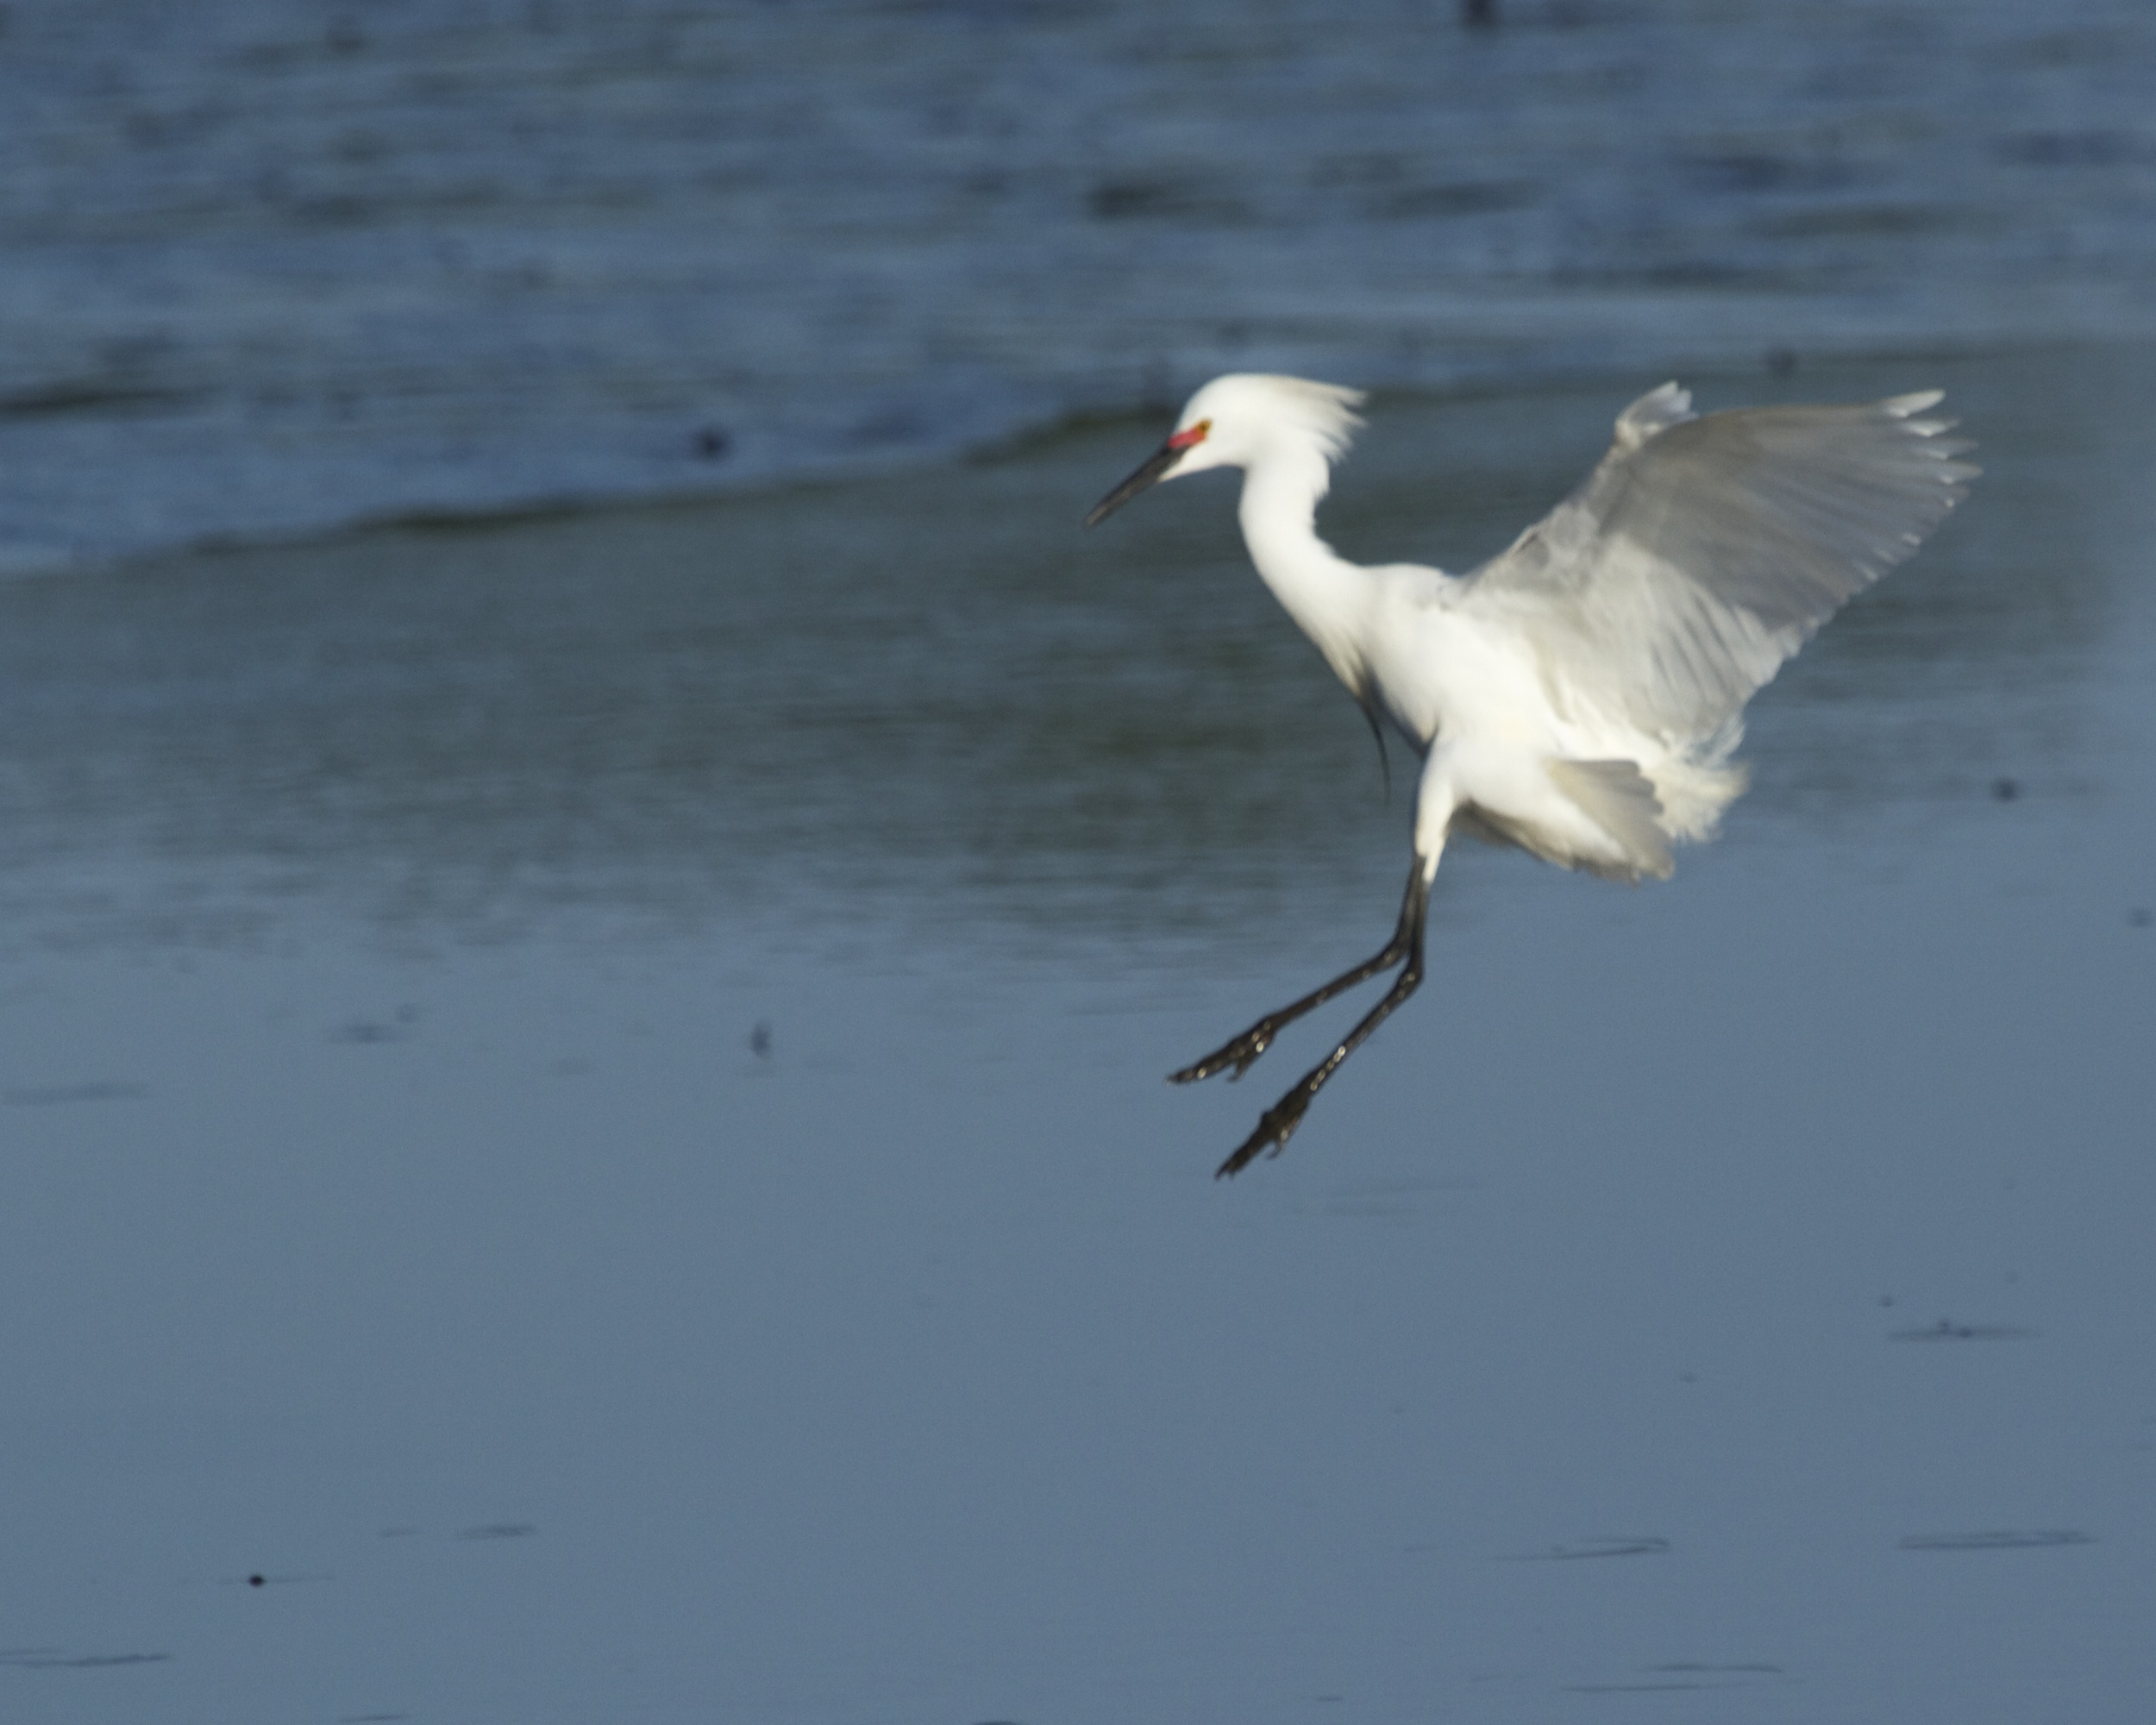 A snowy egret drops in!